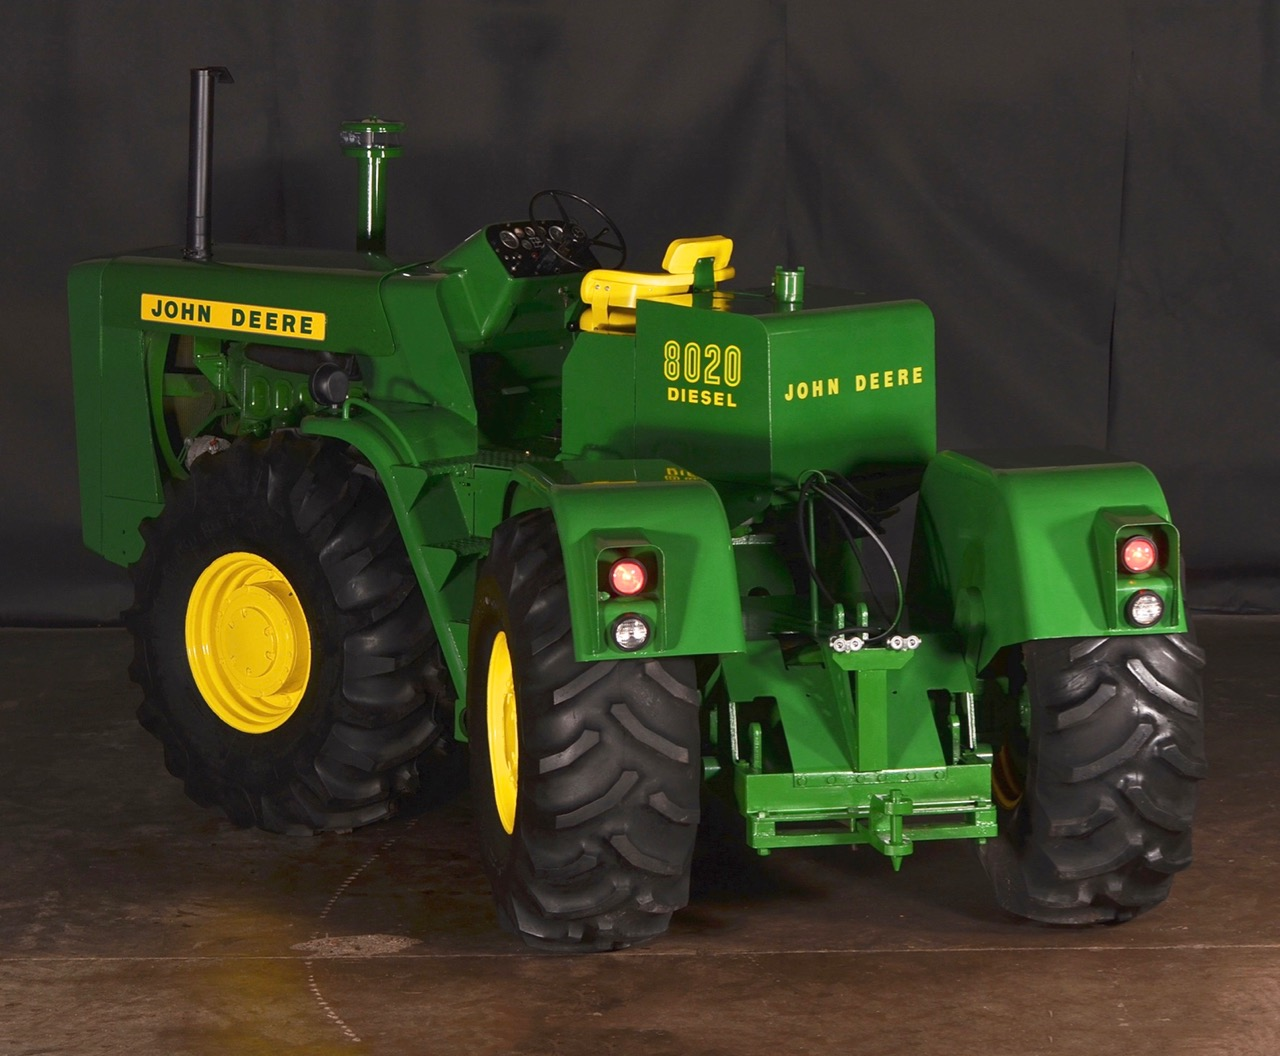 8020 is articulated for better maneuverability of the massive tractor